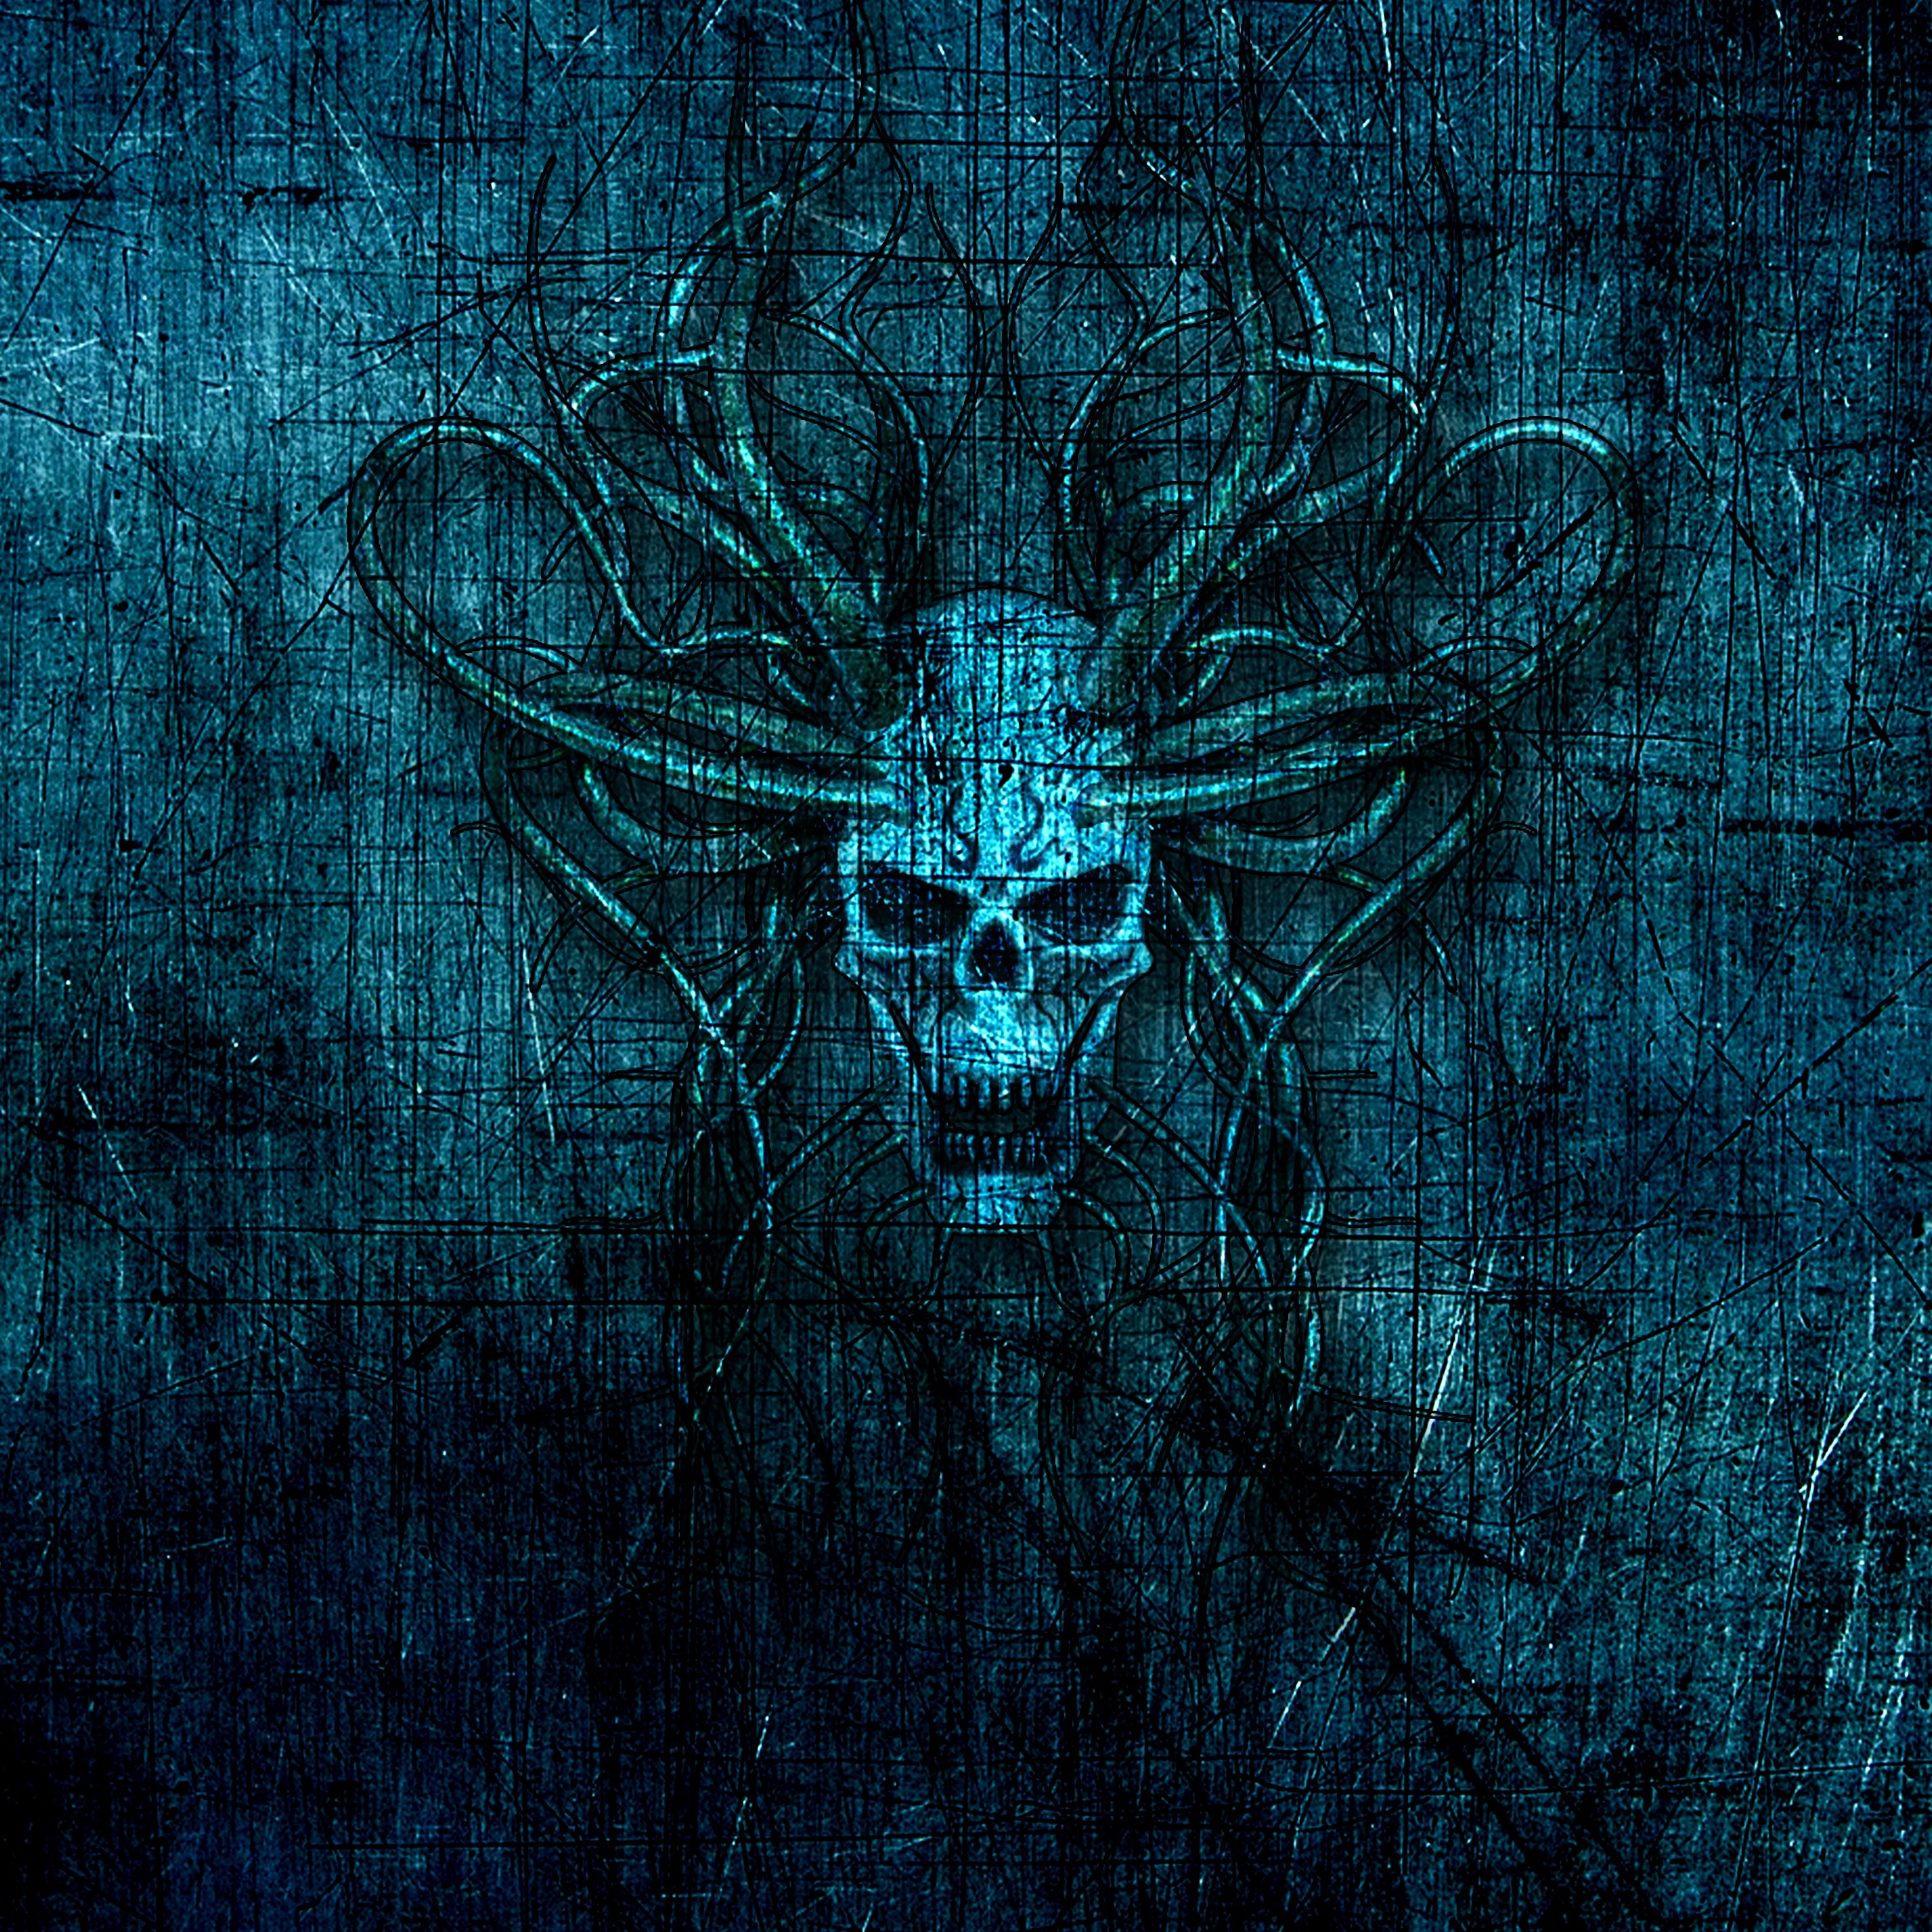 141251 download wallpaper Skull, Horns, Scratches, Art screensavers and pictures for free